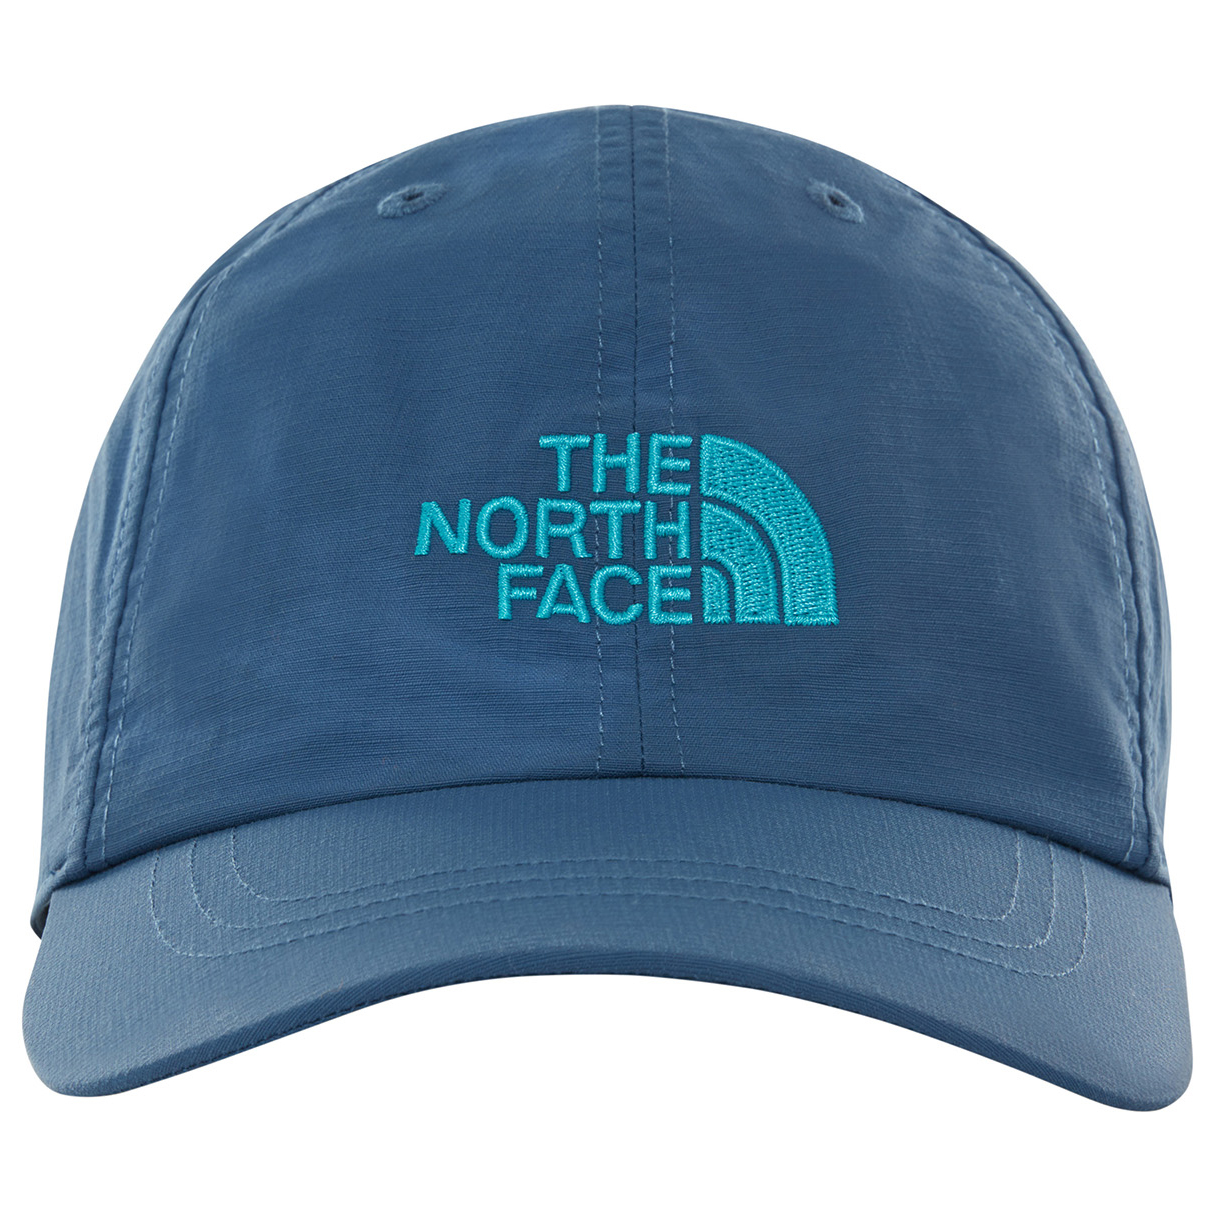 1003c808cfc The North Face Youth Horizon Hat - Cap Kids